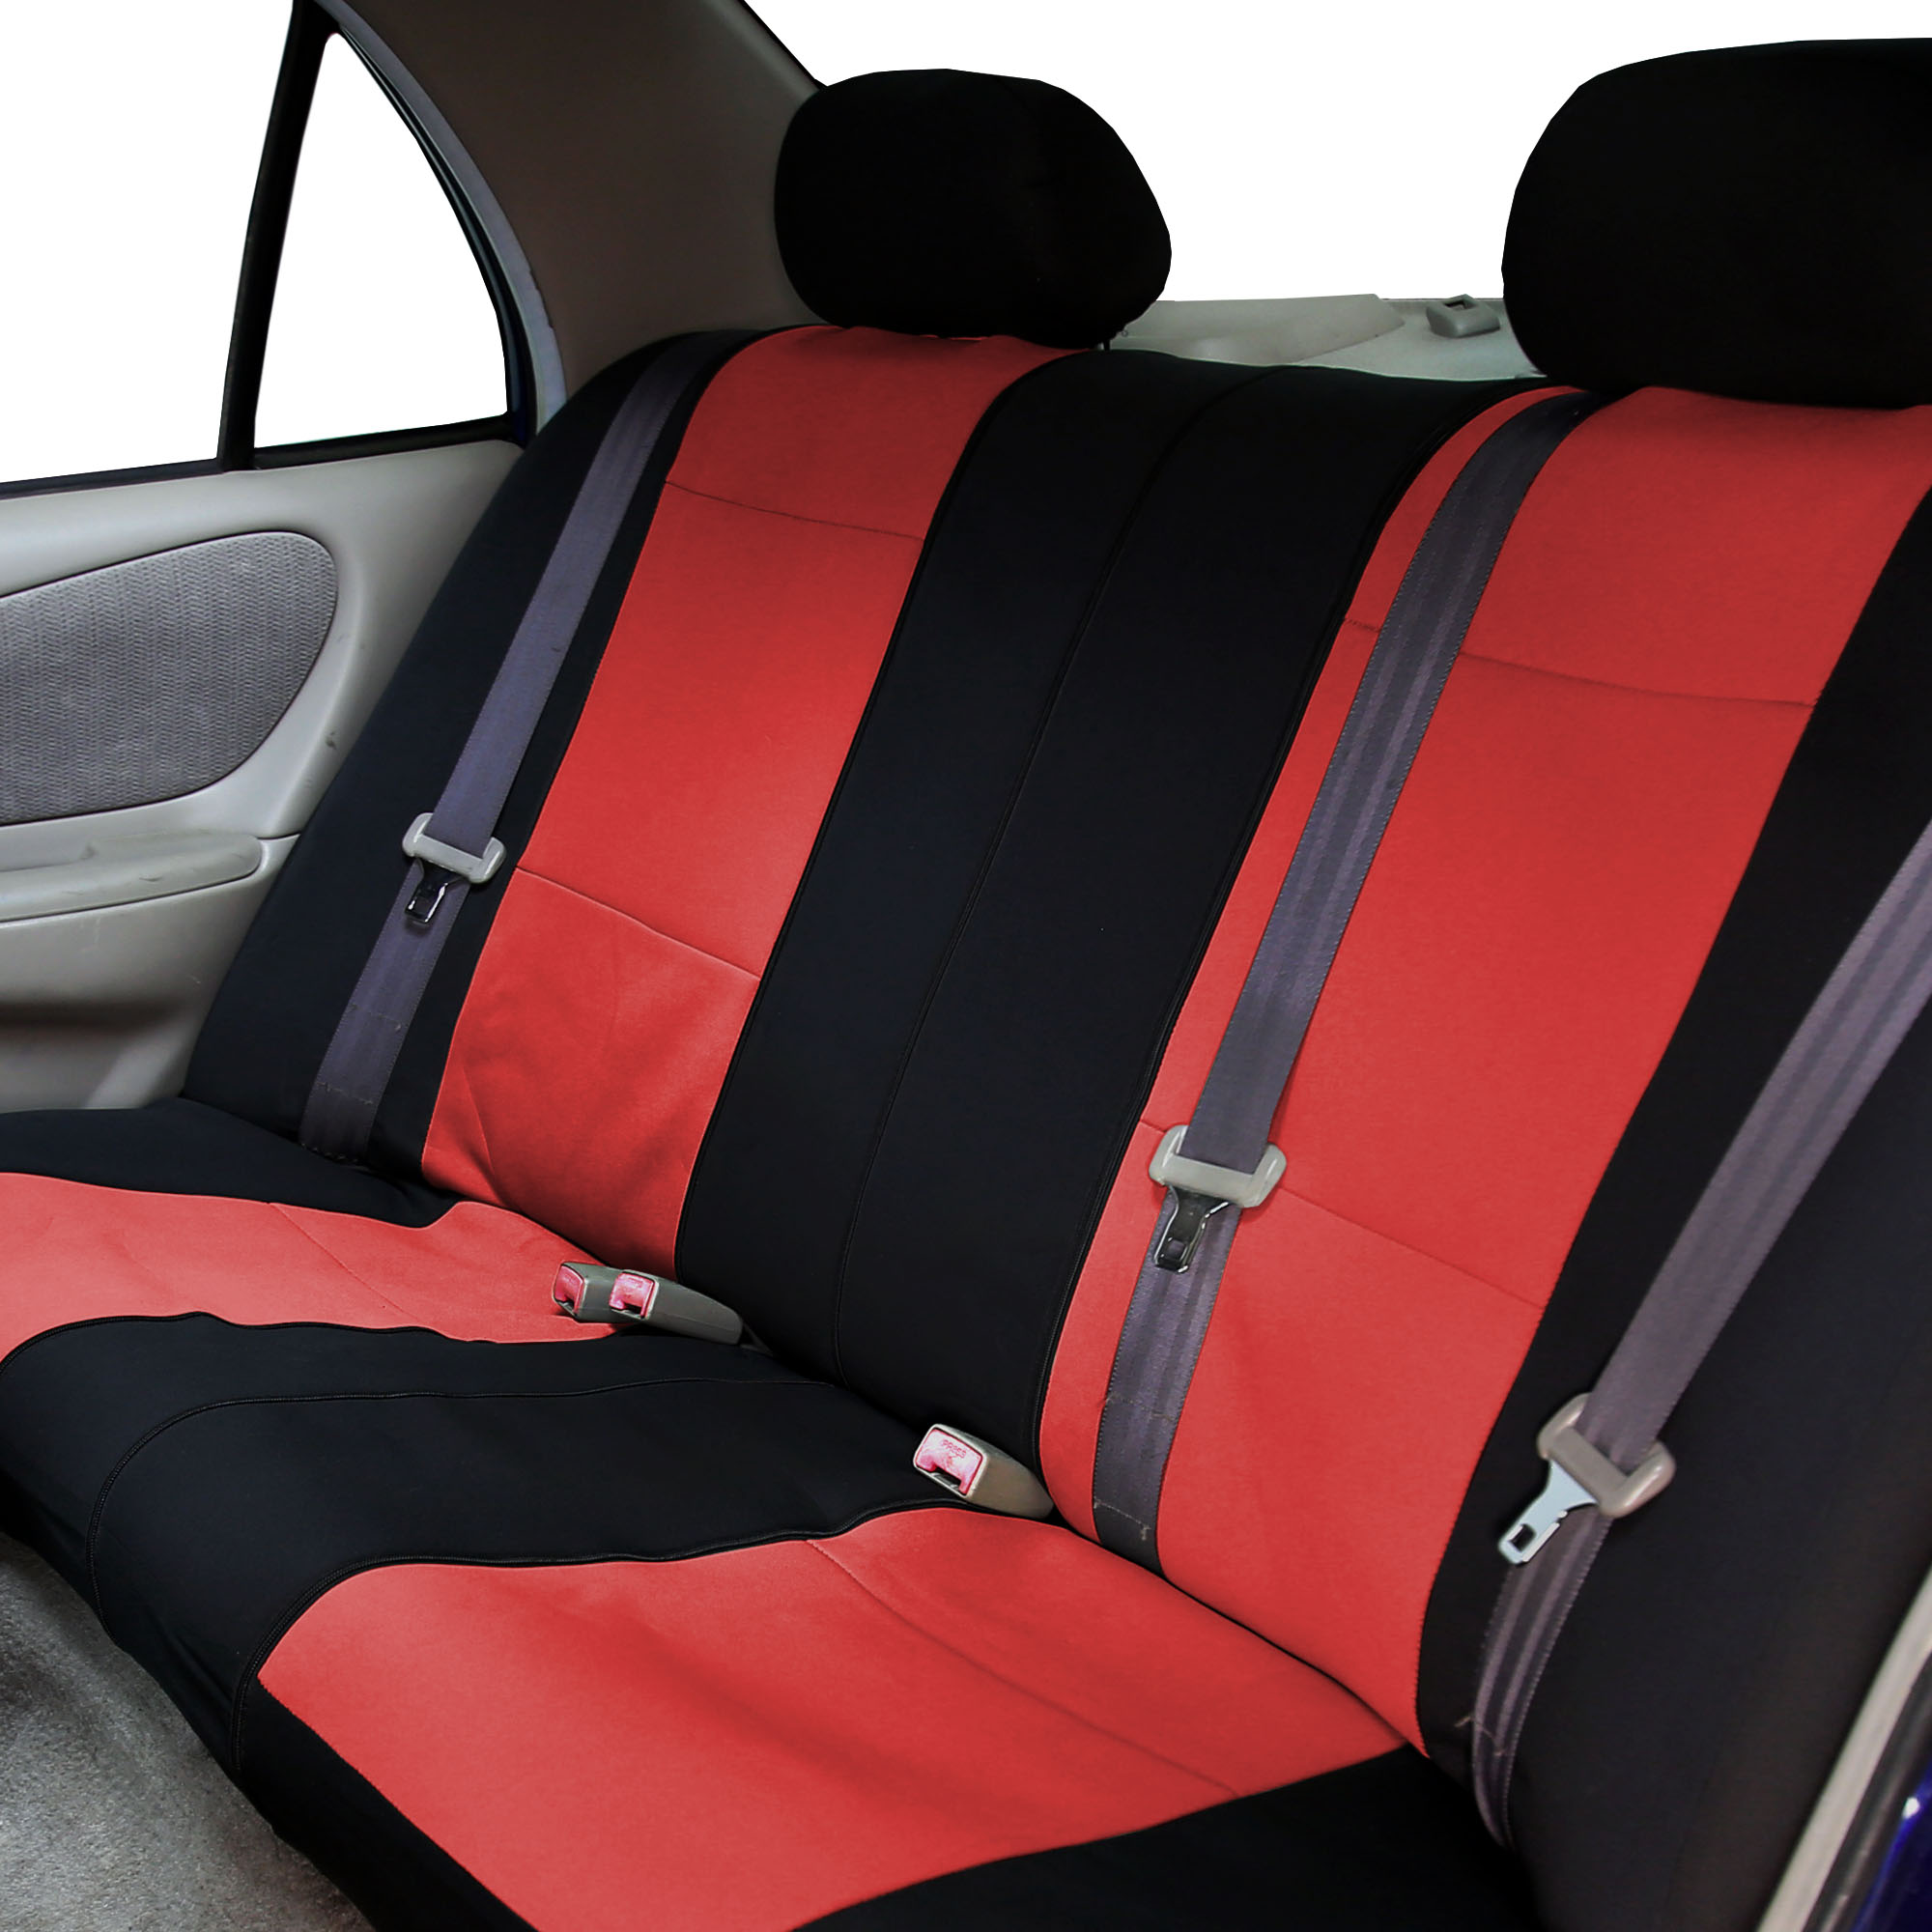 Car-Seat-Cover-Neoprene-Waterproof-Pet-Proof-Full-Set-Cover-With-Dash-Pad thumbnail 54